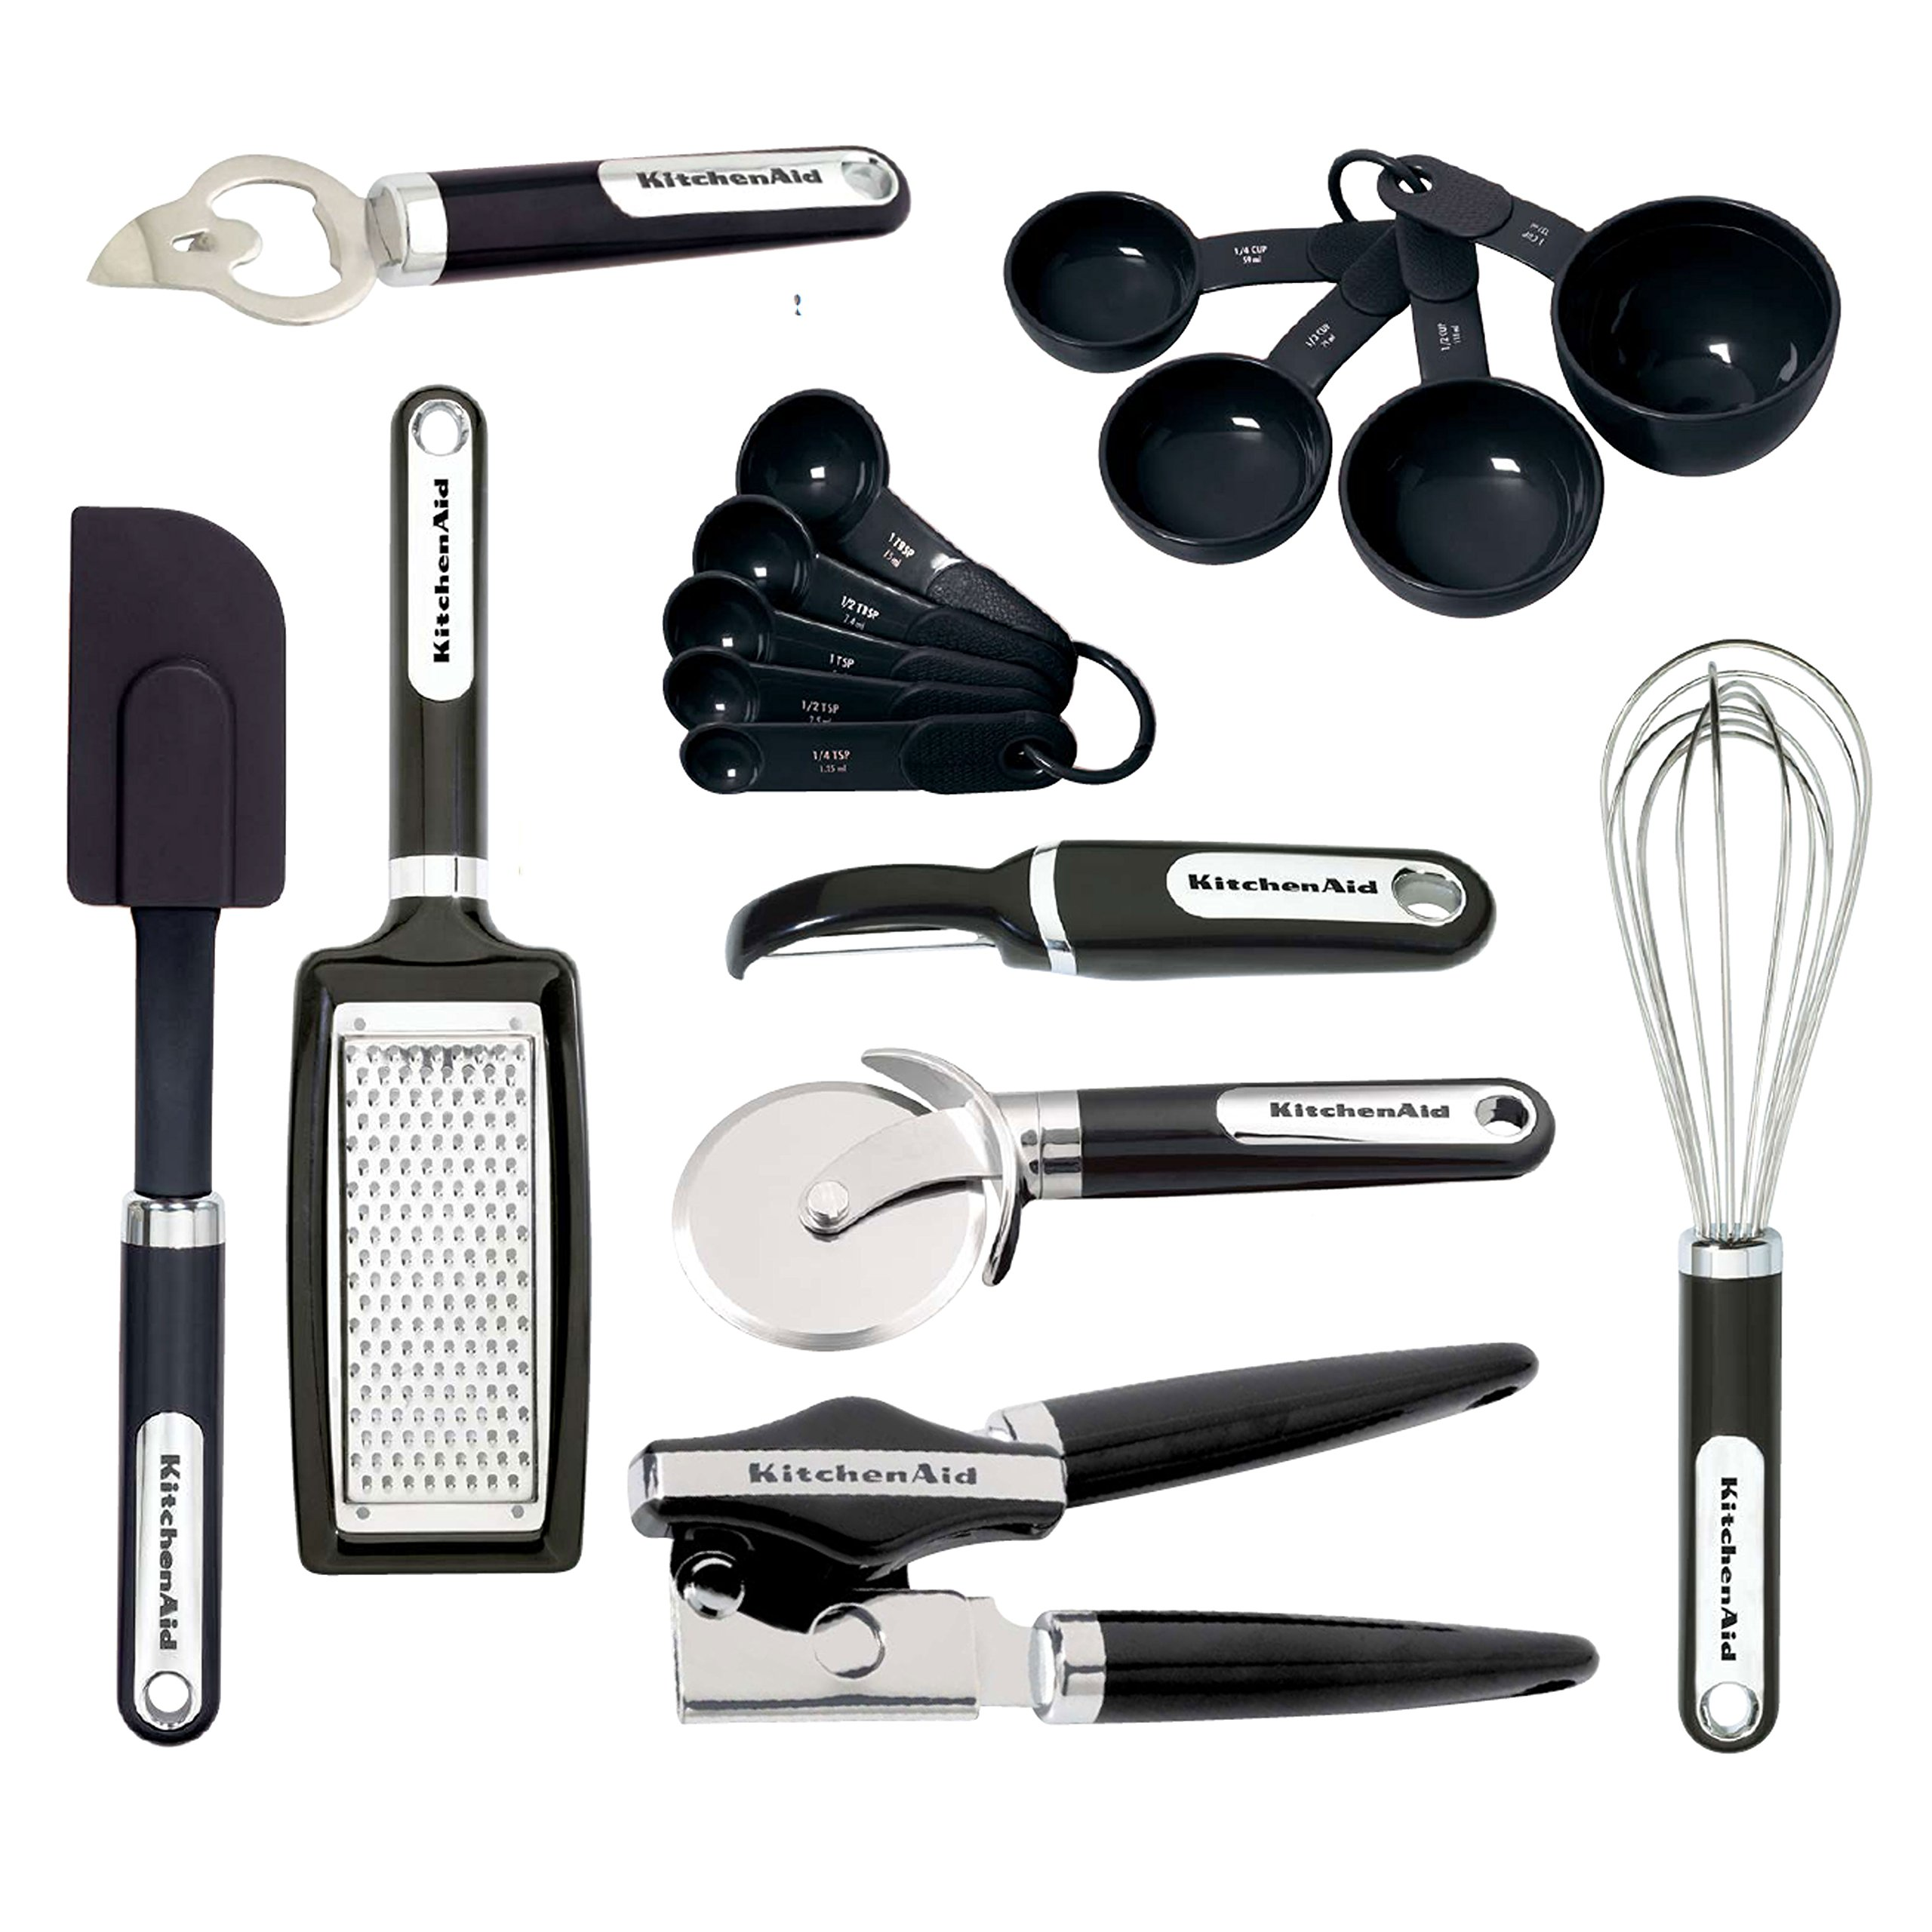 KitchenAid 16-Piece Essential Gadget Set, Black by KitchenAid